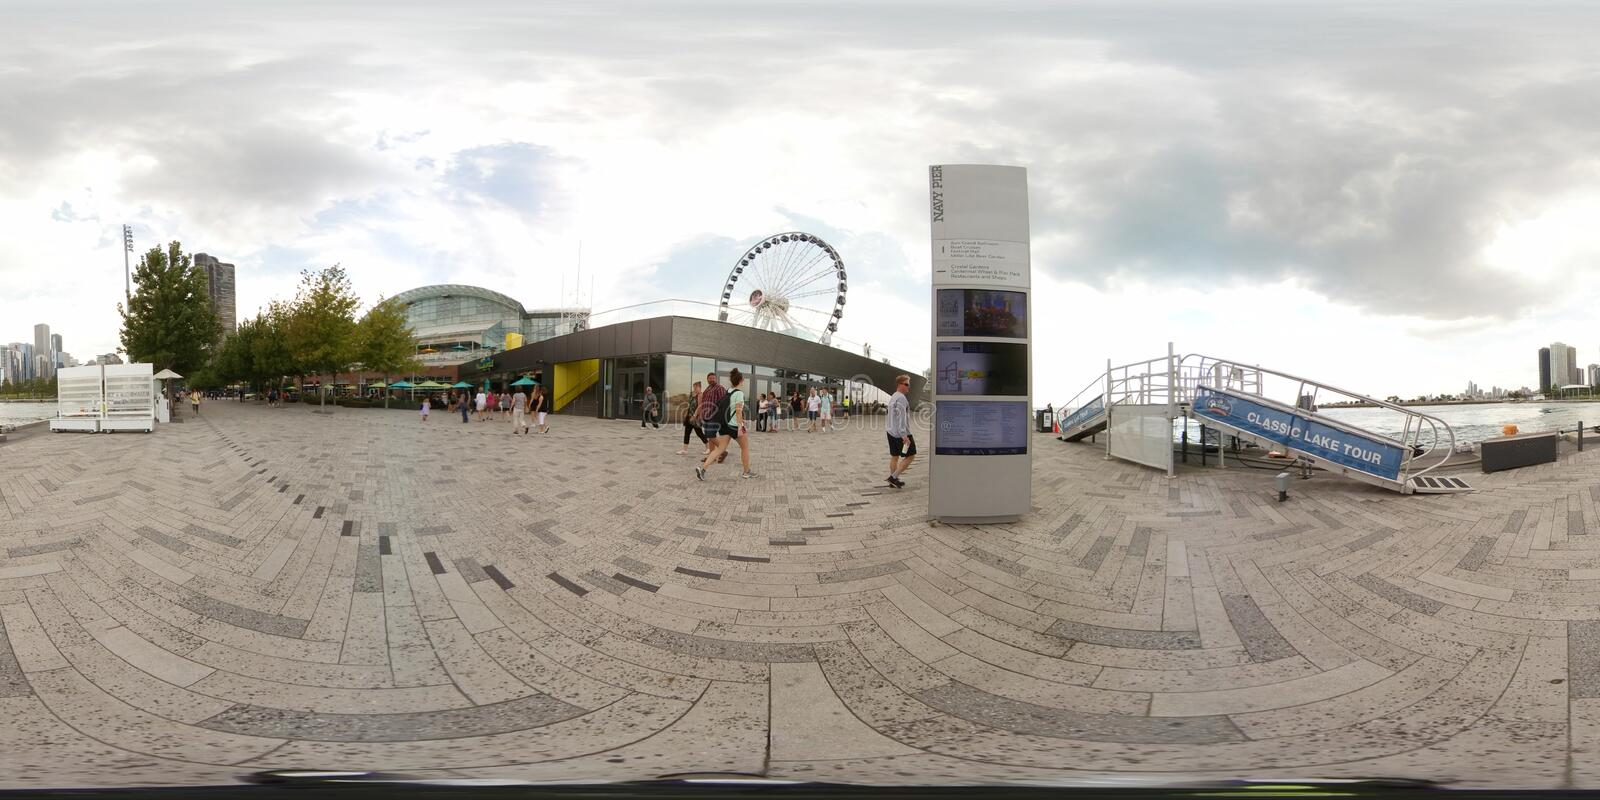 360vr image of the Navy Pier Chicago. CHICAGO, IL, USA - AUGUST 8, 2017: 360vr image of the Navy Pier which is a 3300 foot pier on the Chicago shoreline of Lake royalty free stock photography